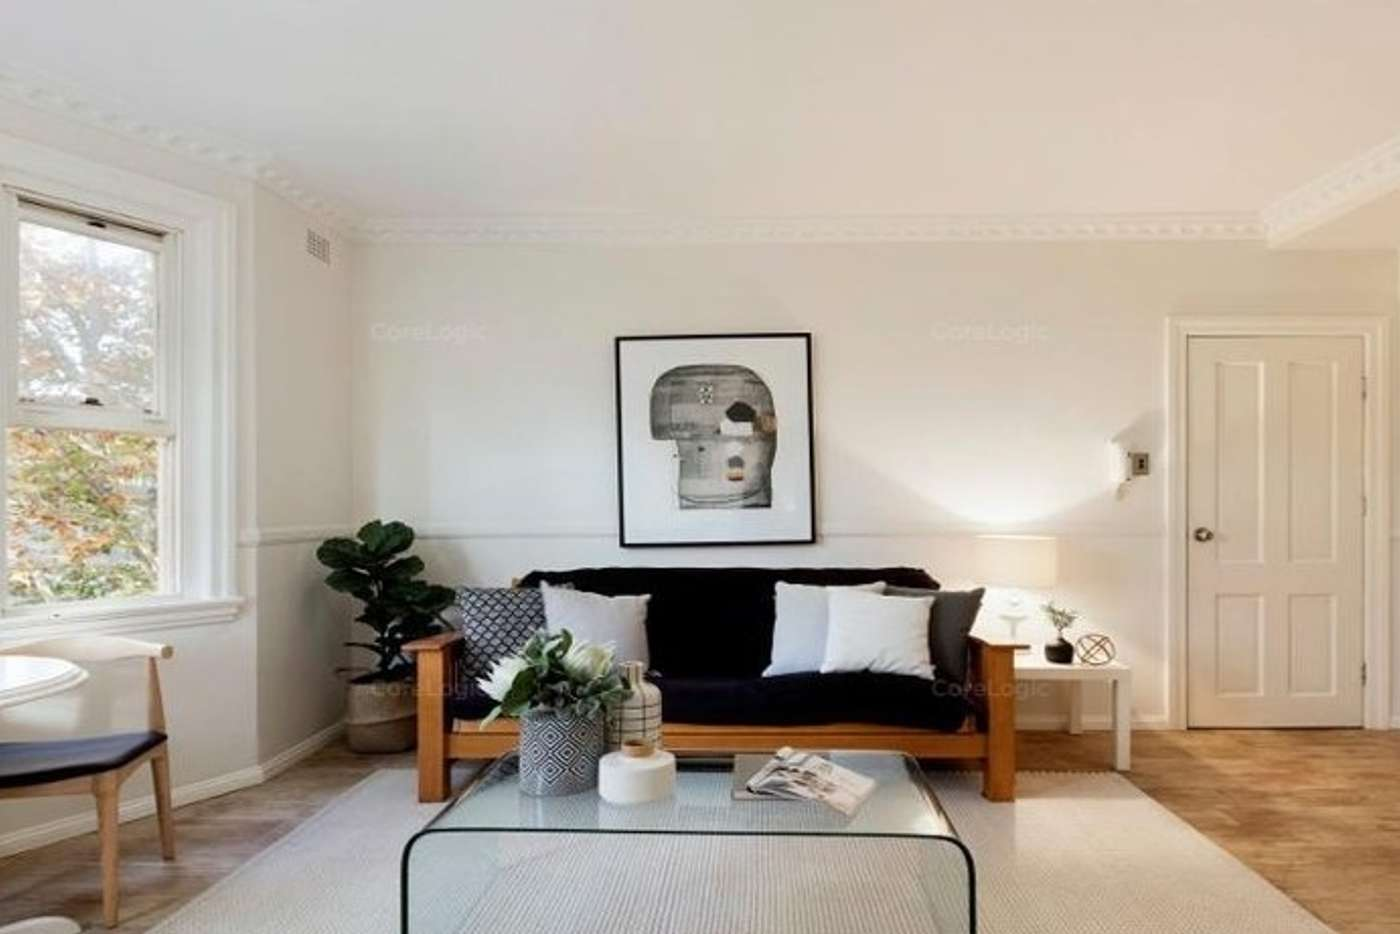 Main view of Homely apartment listing, 12/1A Roslyn Street, Potts Point NSW 2011